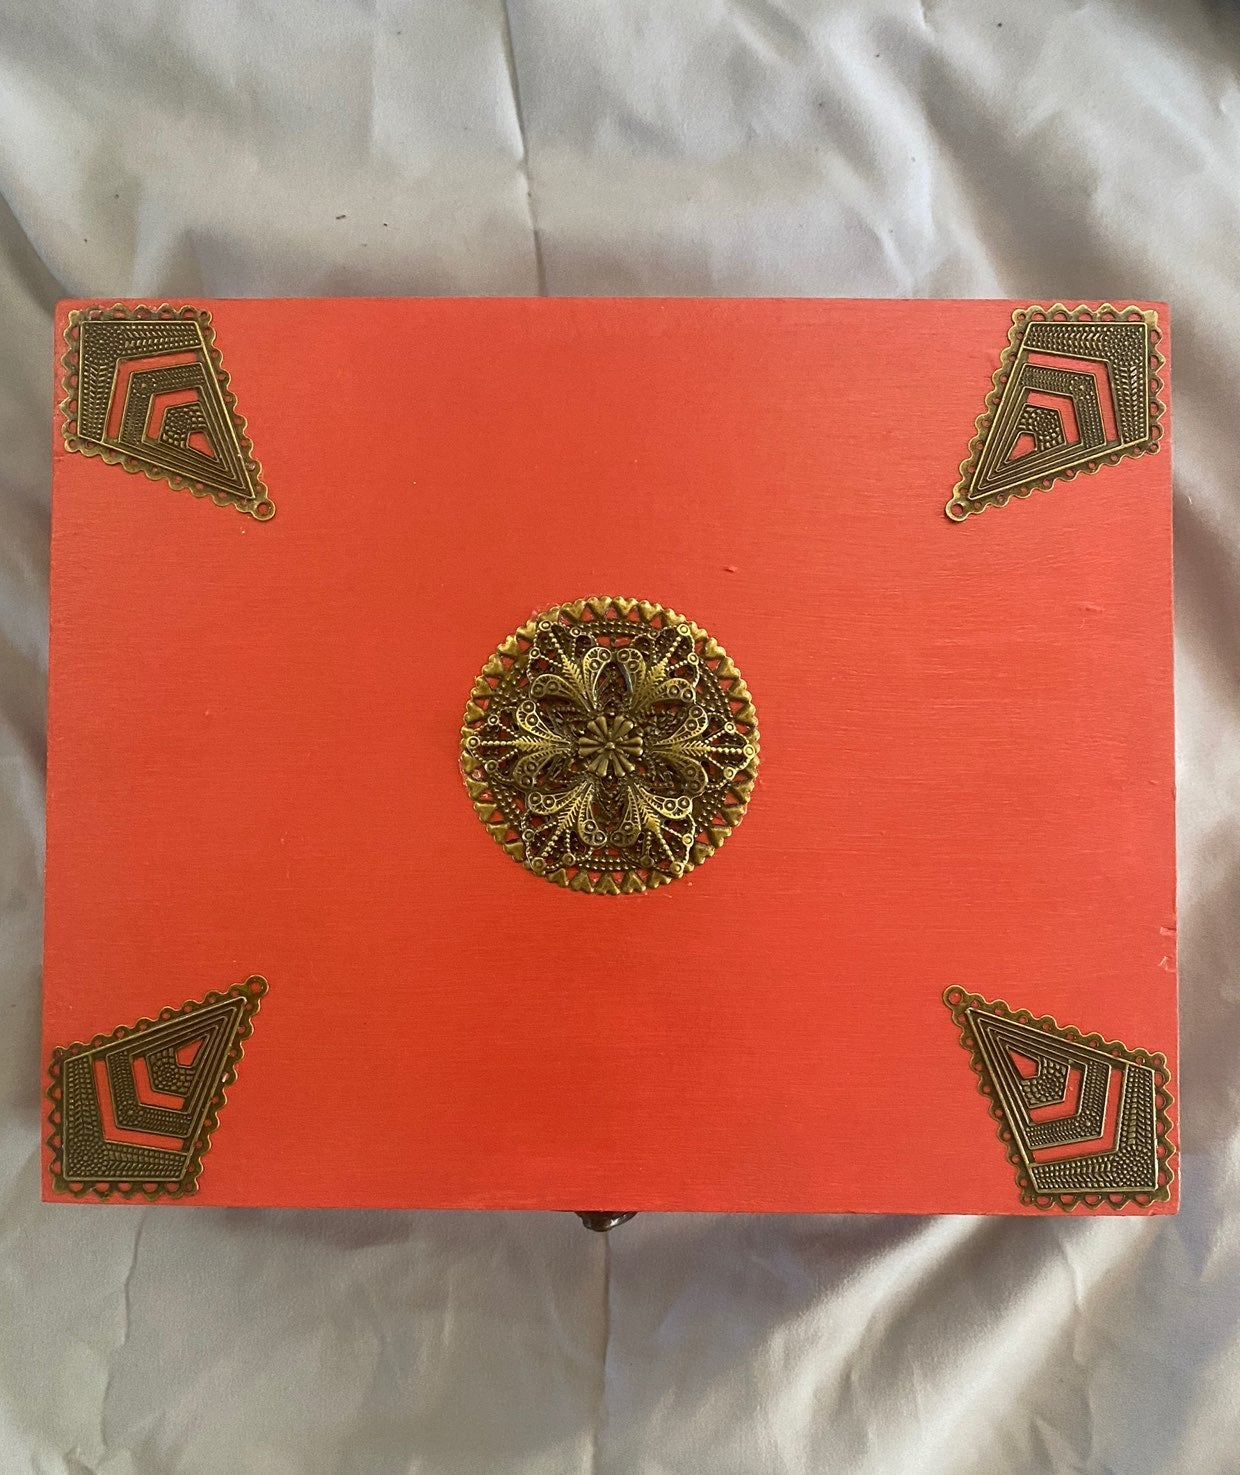 Coral painted cigar box, brass colored a